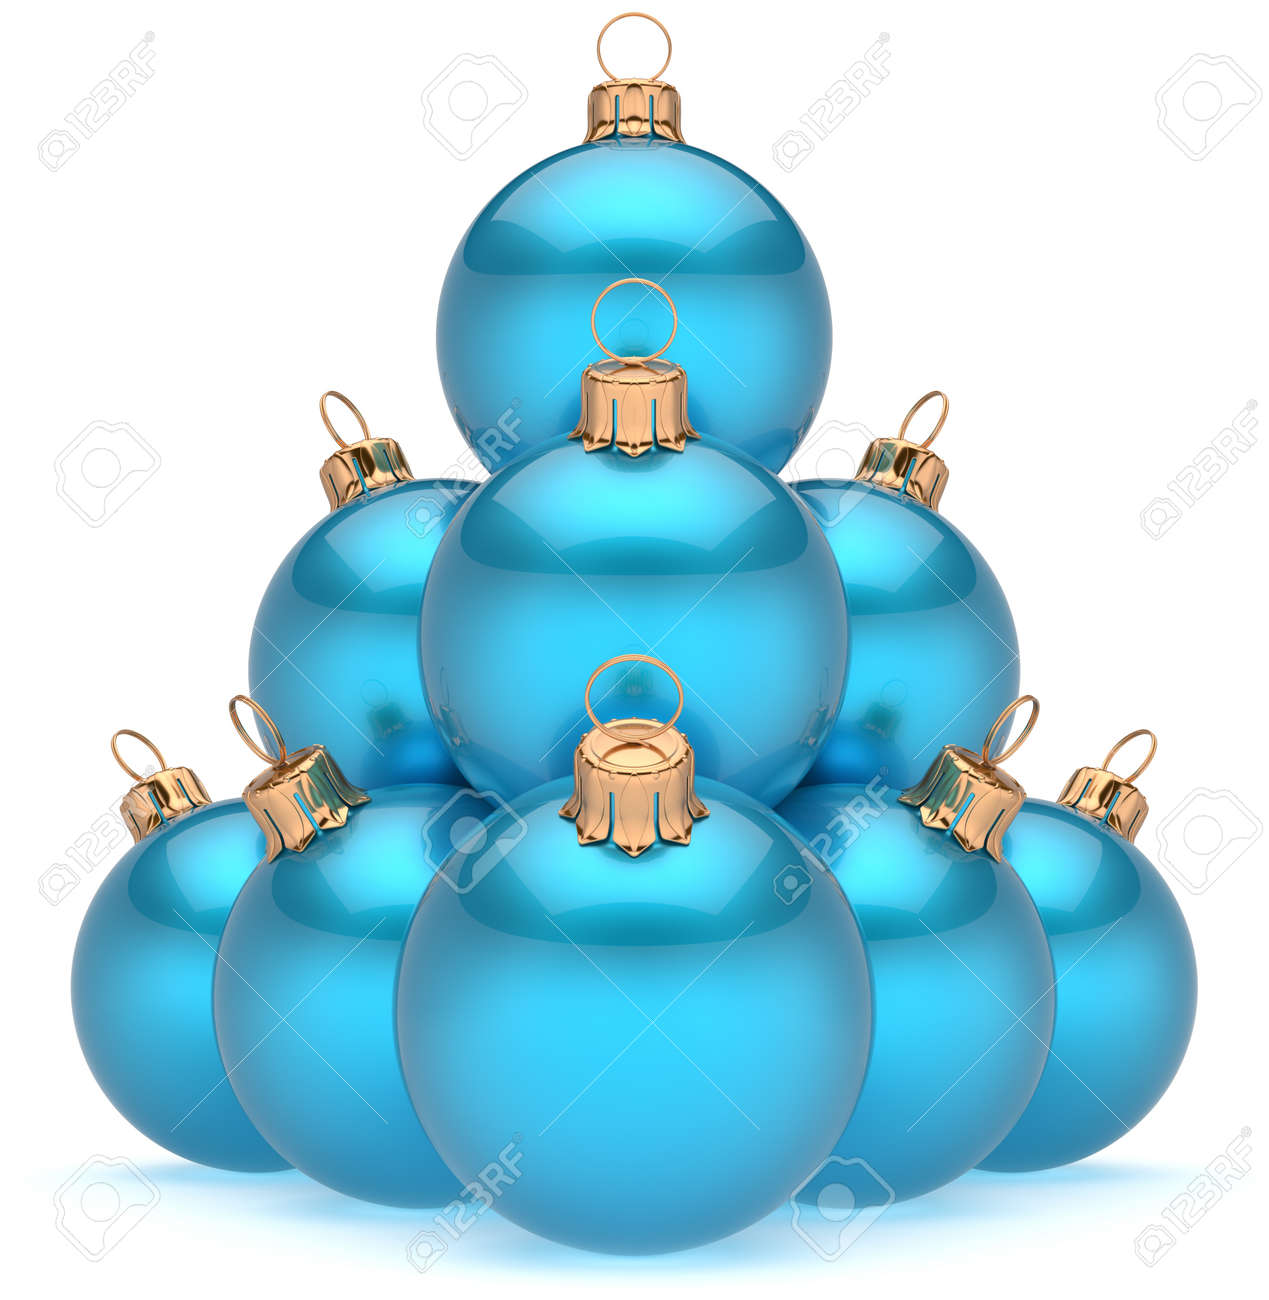 Pyramid christmas ornament - Christmas Ball Pyramid Blue New Year S Eve Baubles Group Adornment Decoration Glossy Spheres Ornament Cyan